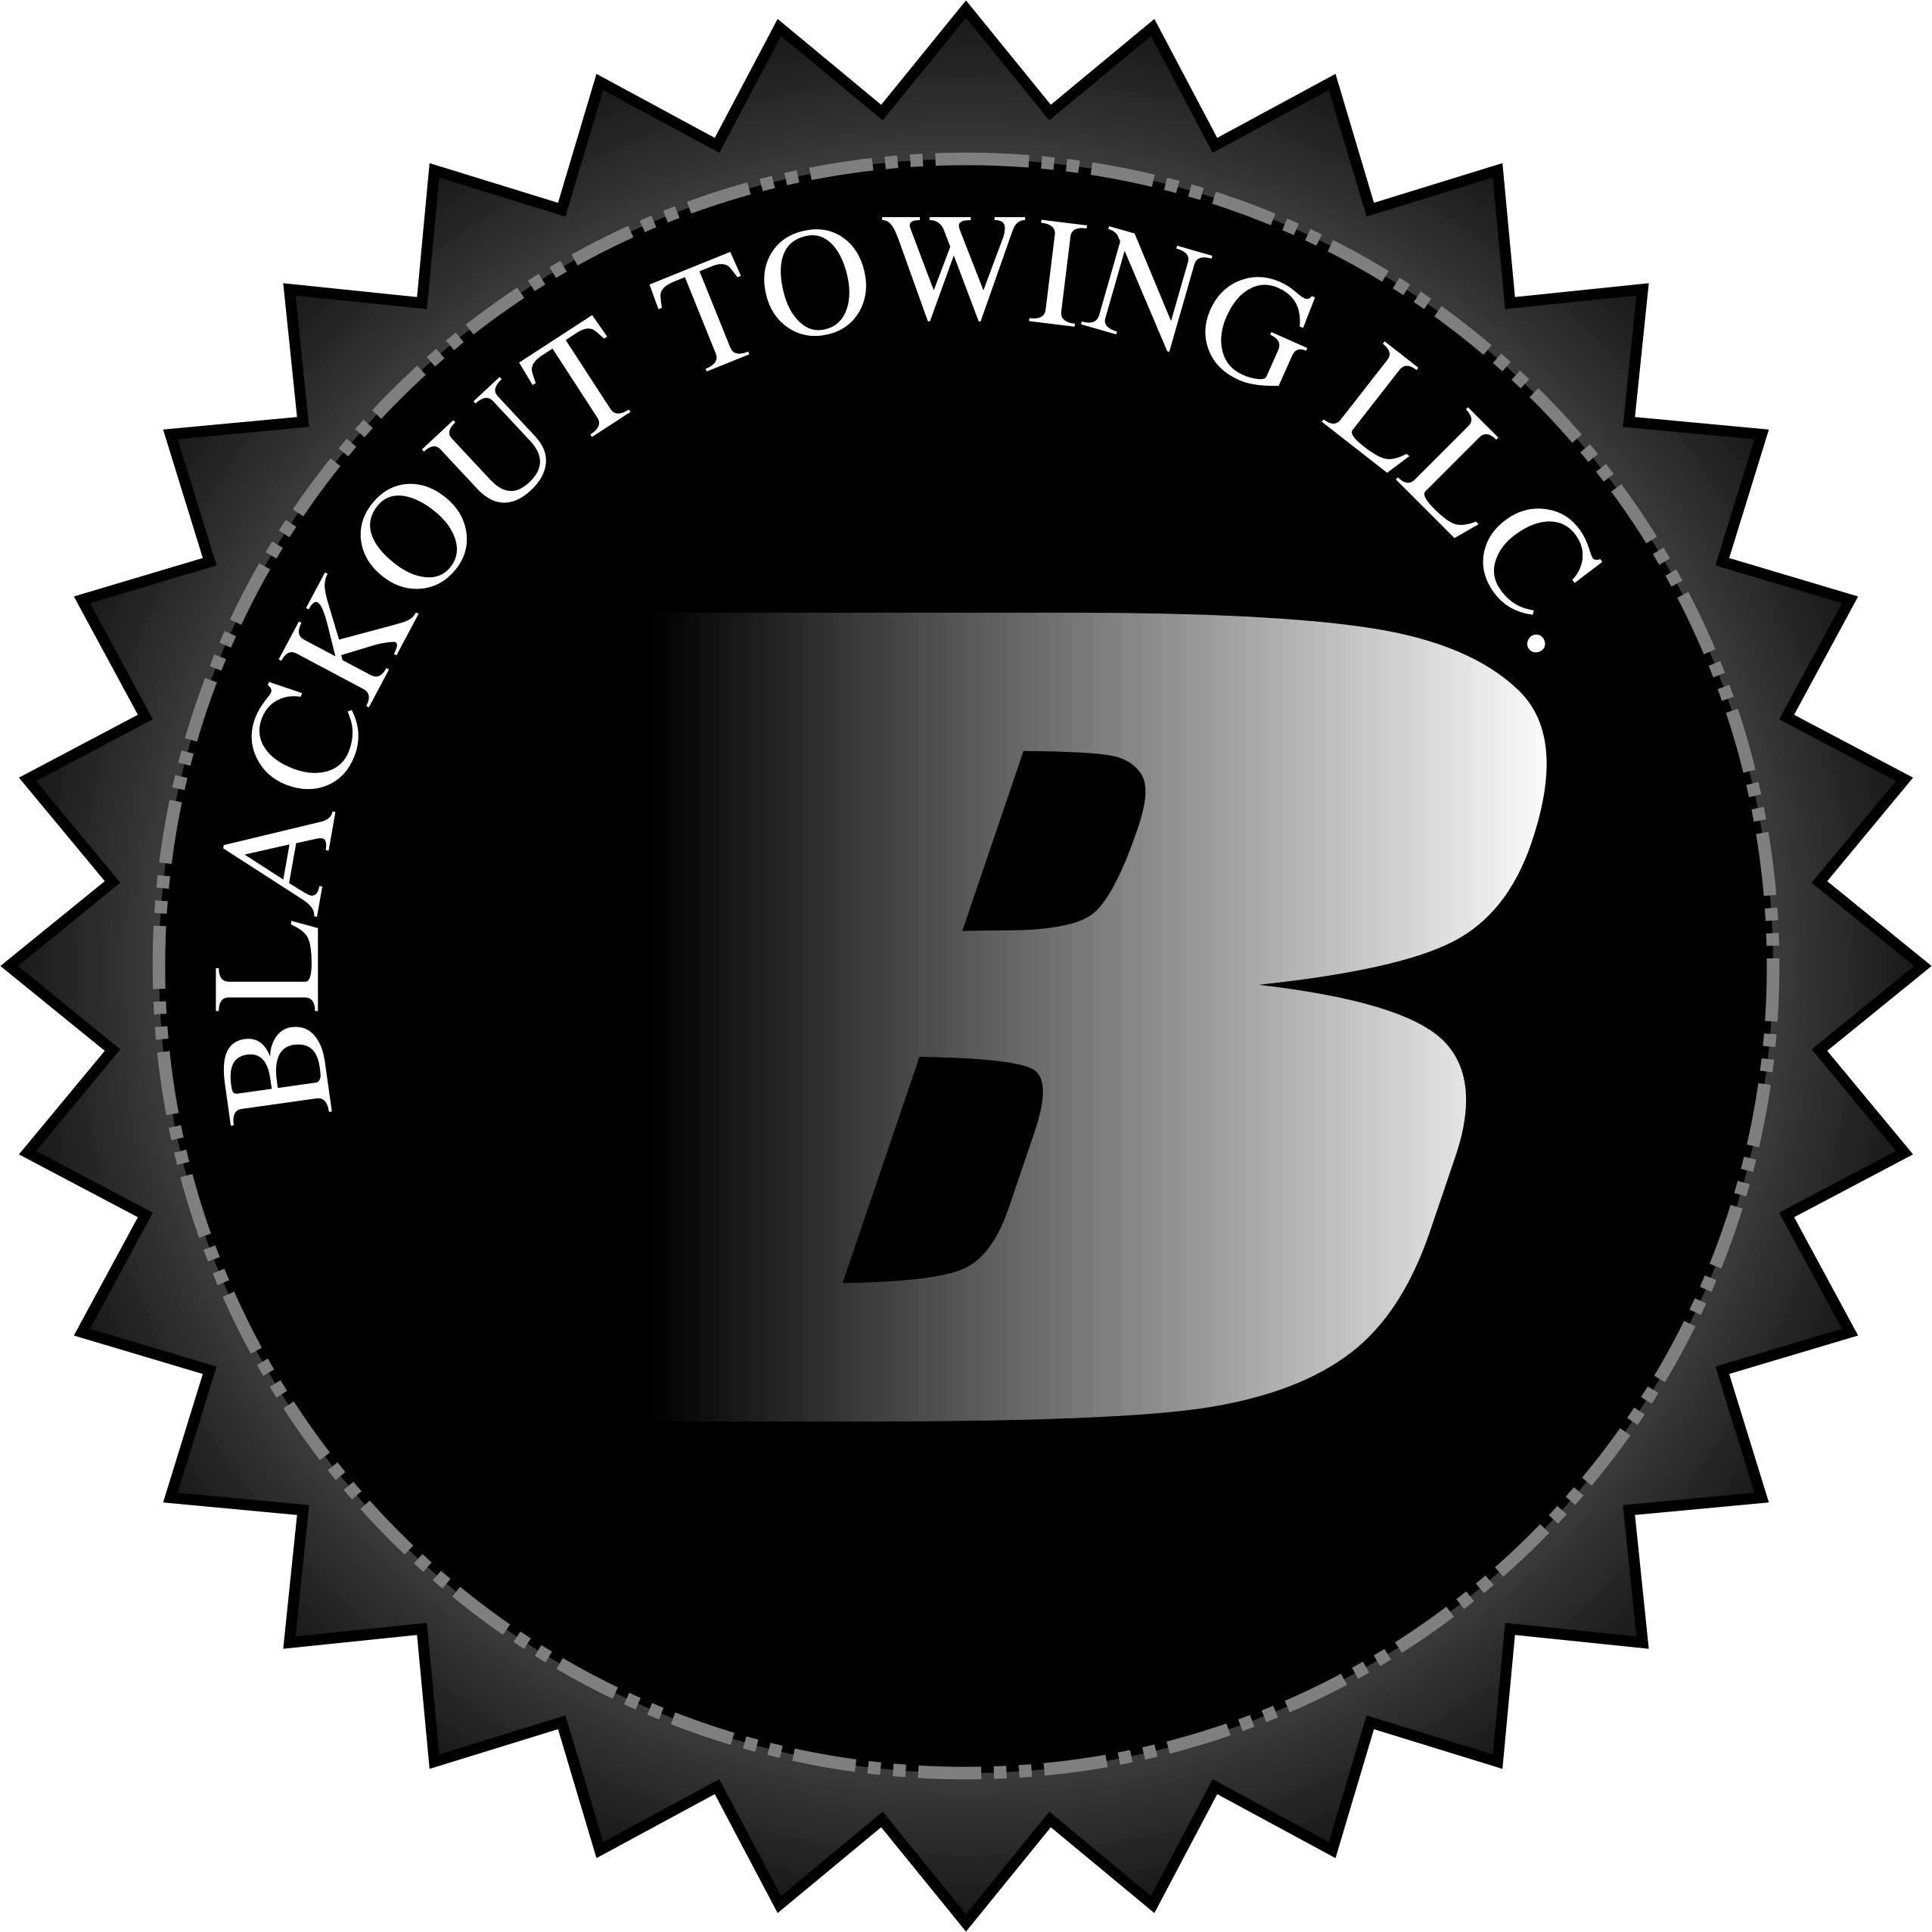 Black Out Towing